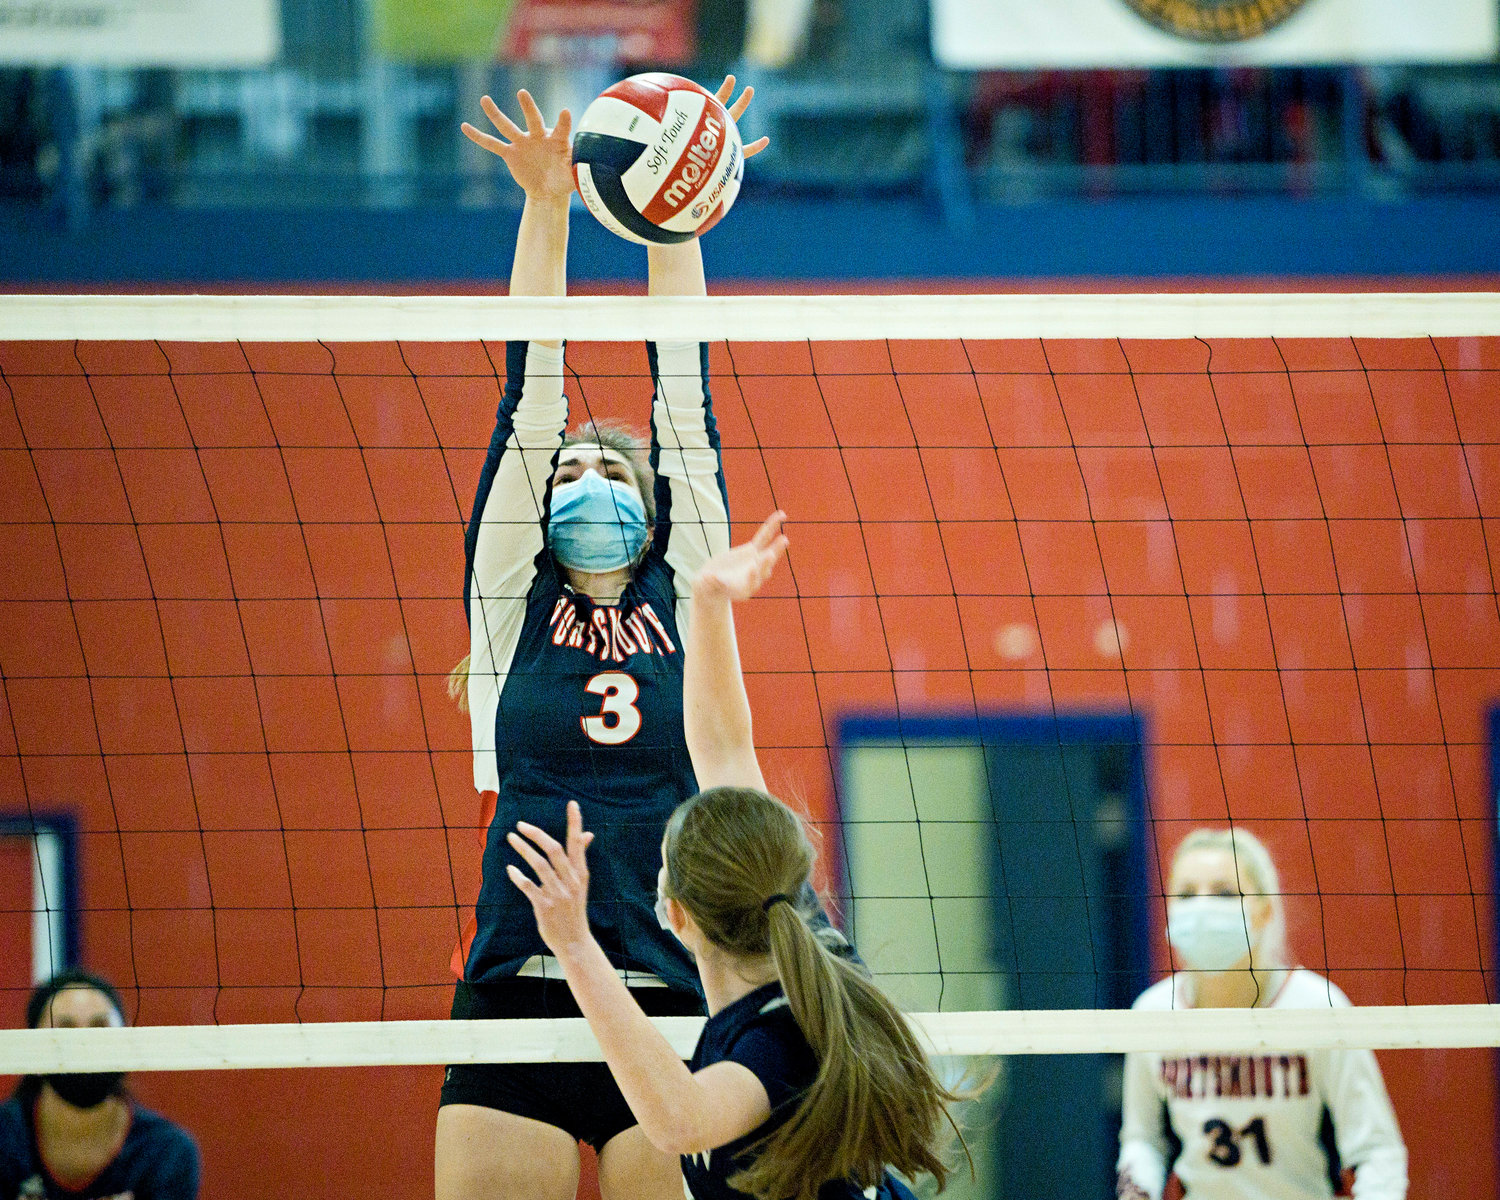 Erin Anderson stops the ball from coming back over the net against Bay View.